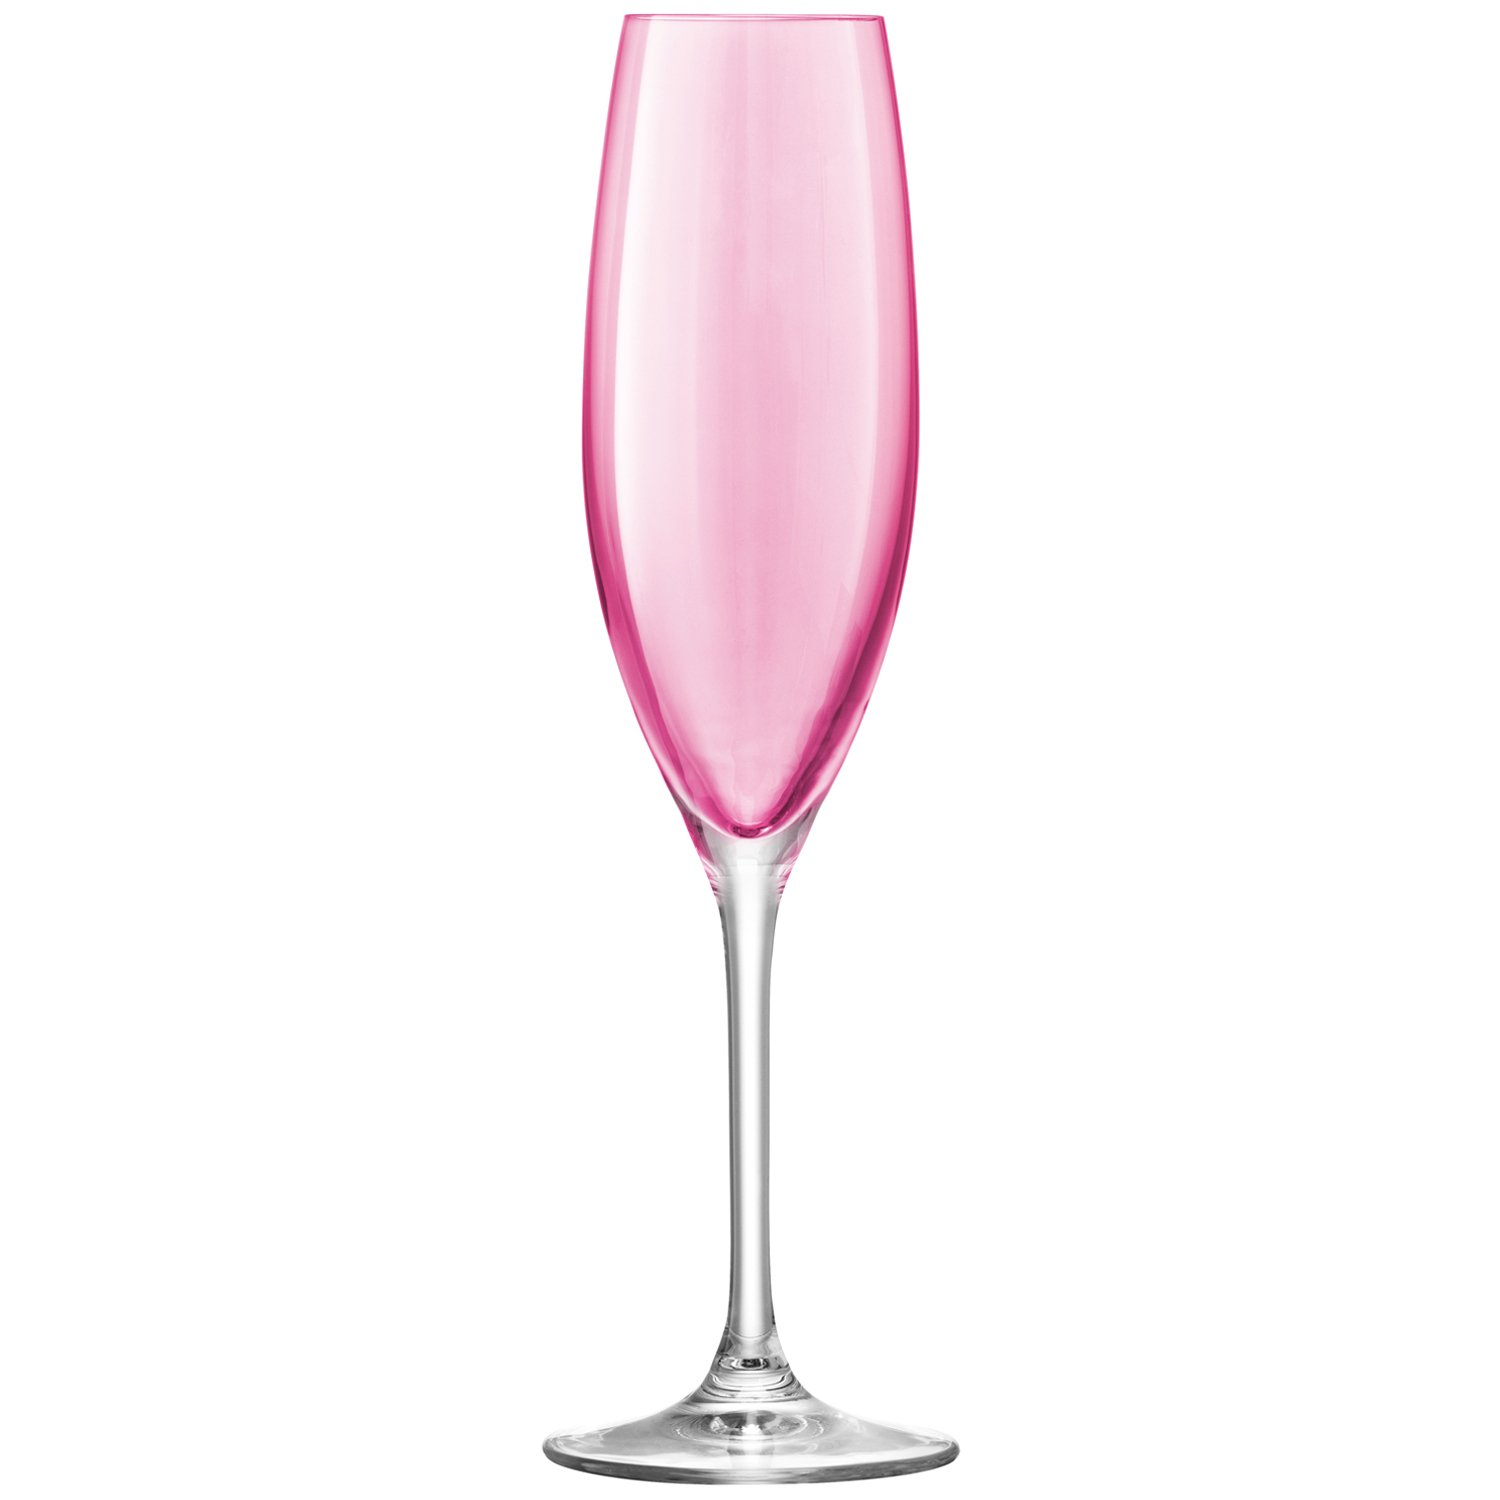 LSA International Pastel Polka Champagne Flute 4 Pack , 7.6 fl. Oz., Assorted